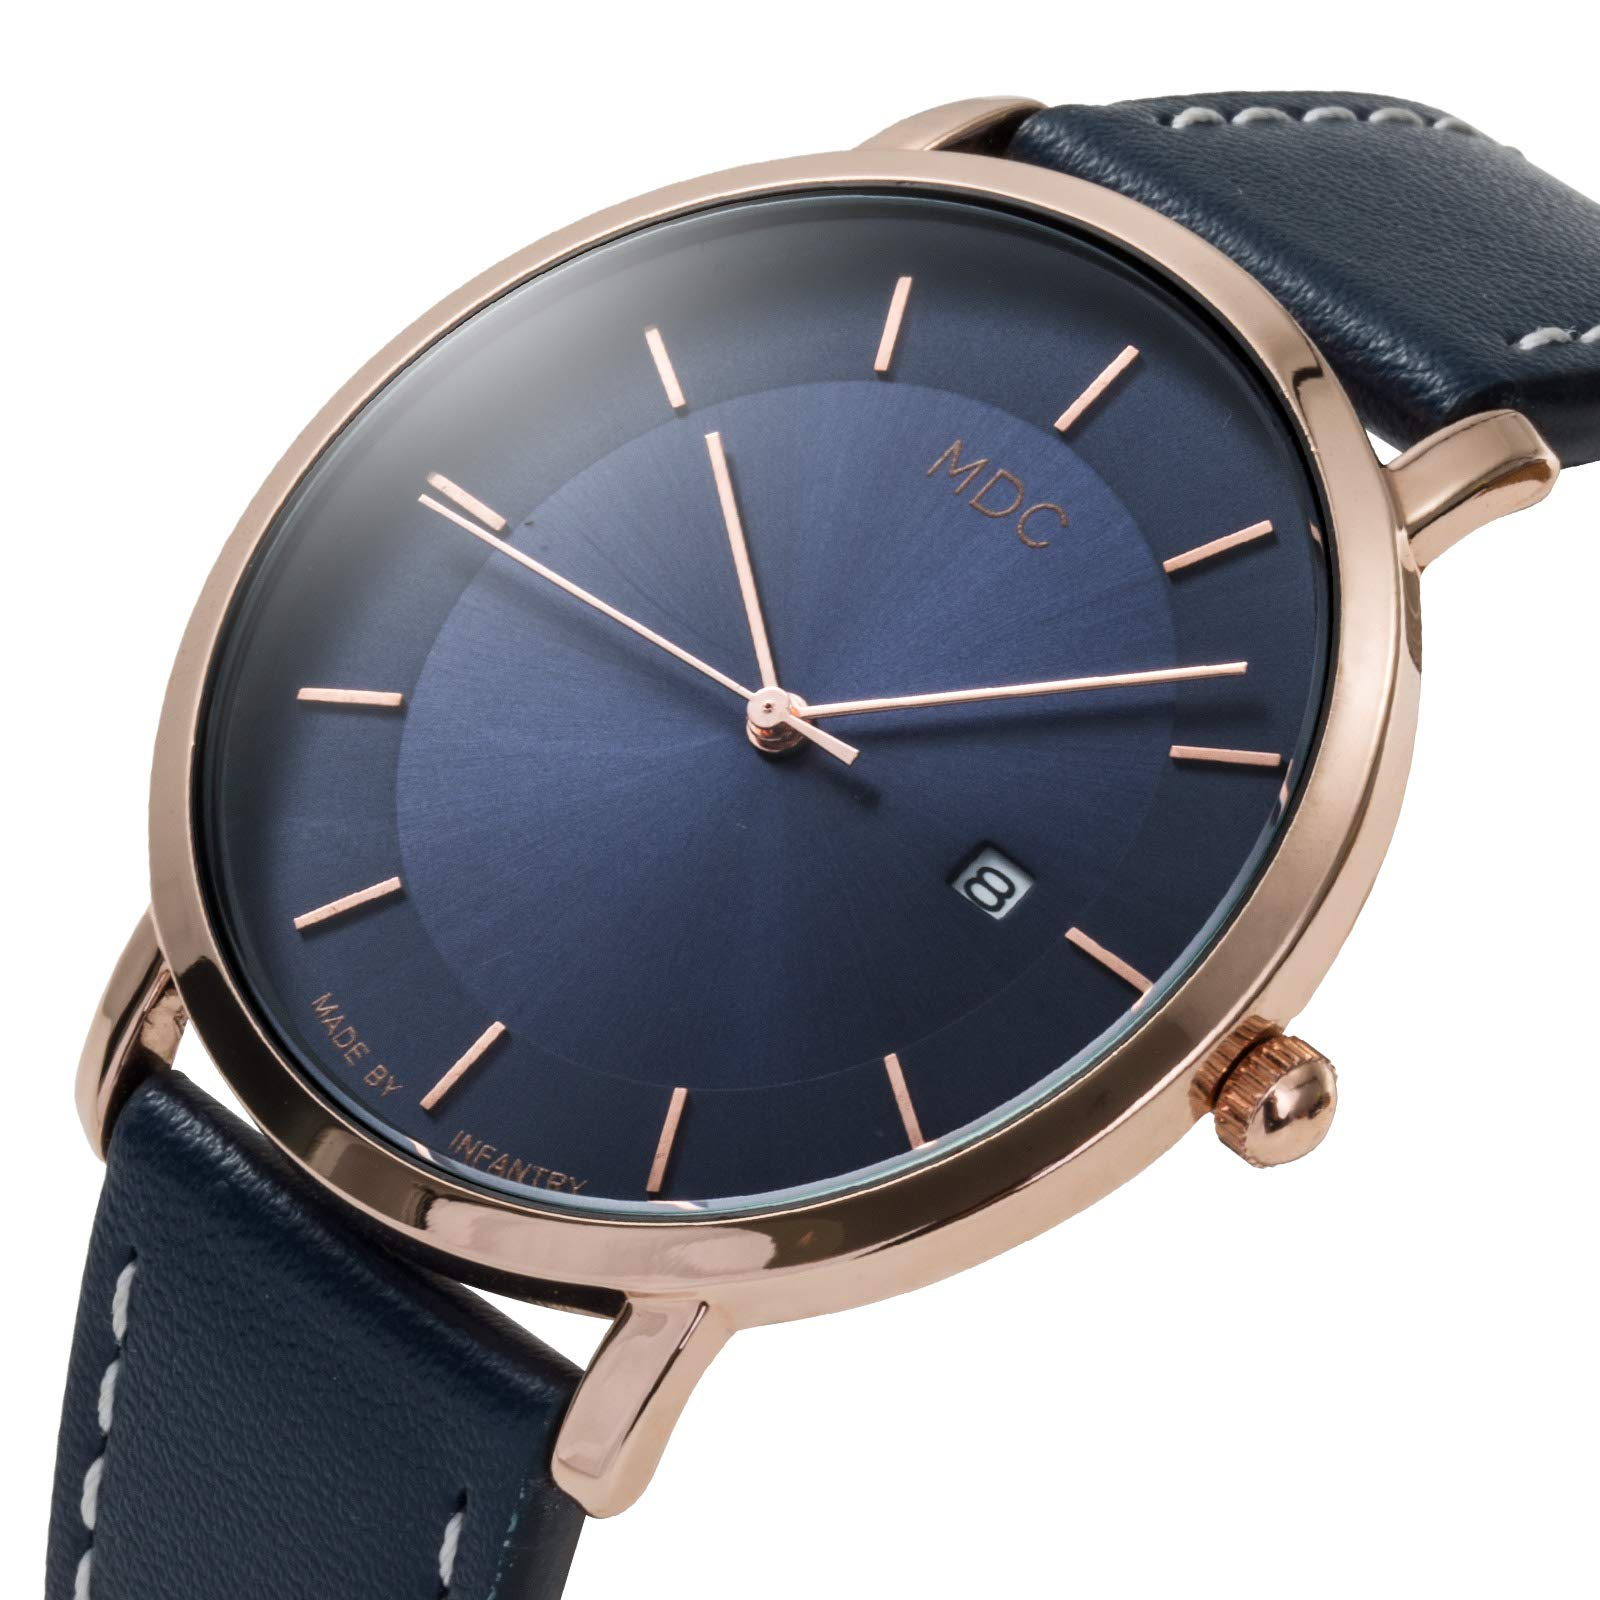 MDC Mens Minimalist Classic Analog Watch Blue Leather Ultra Thin Wrist Watches for Men with Date Dress Business Casual by MDC (Image #1)